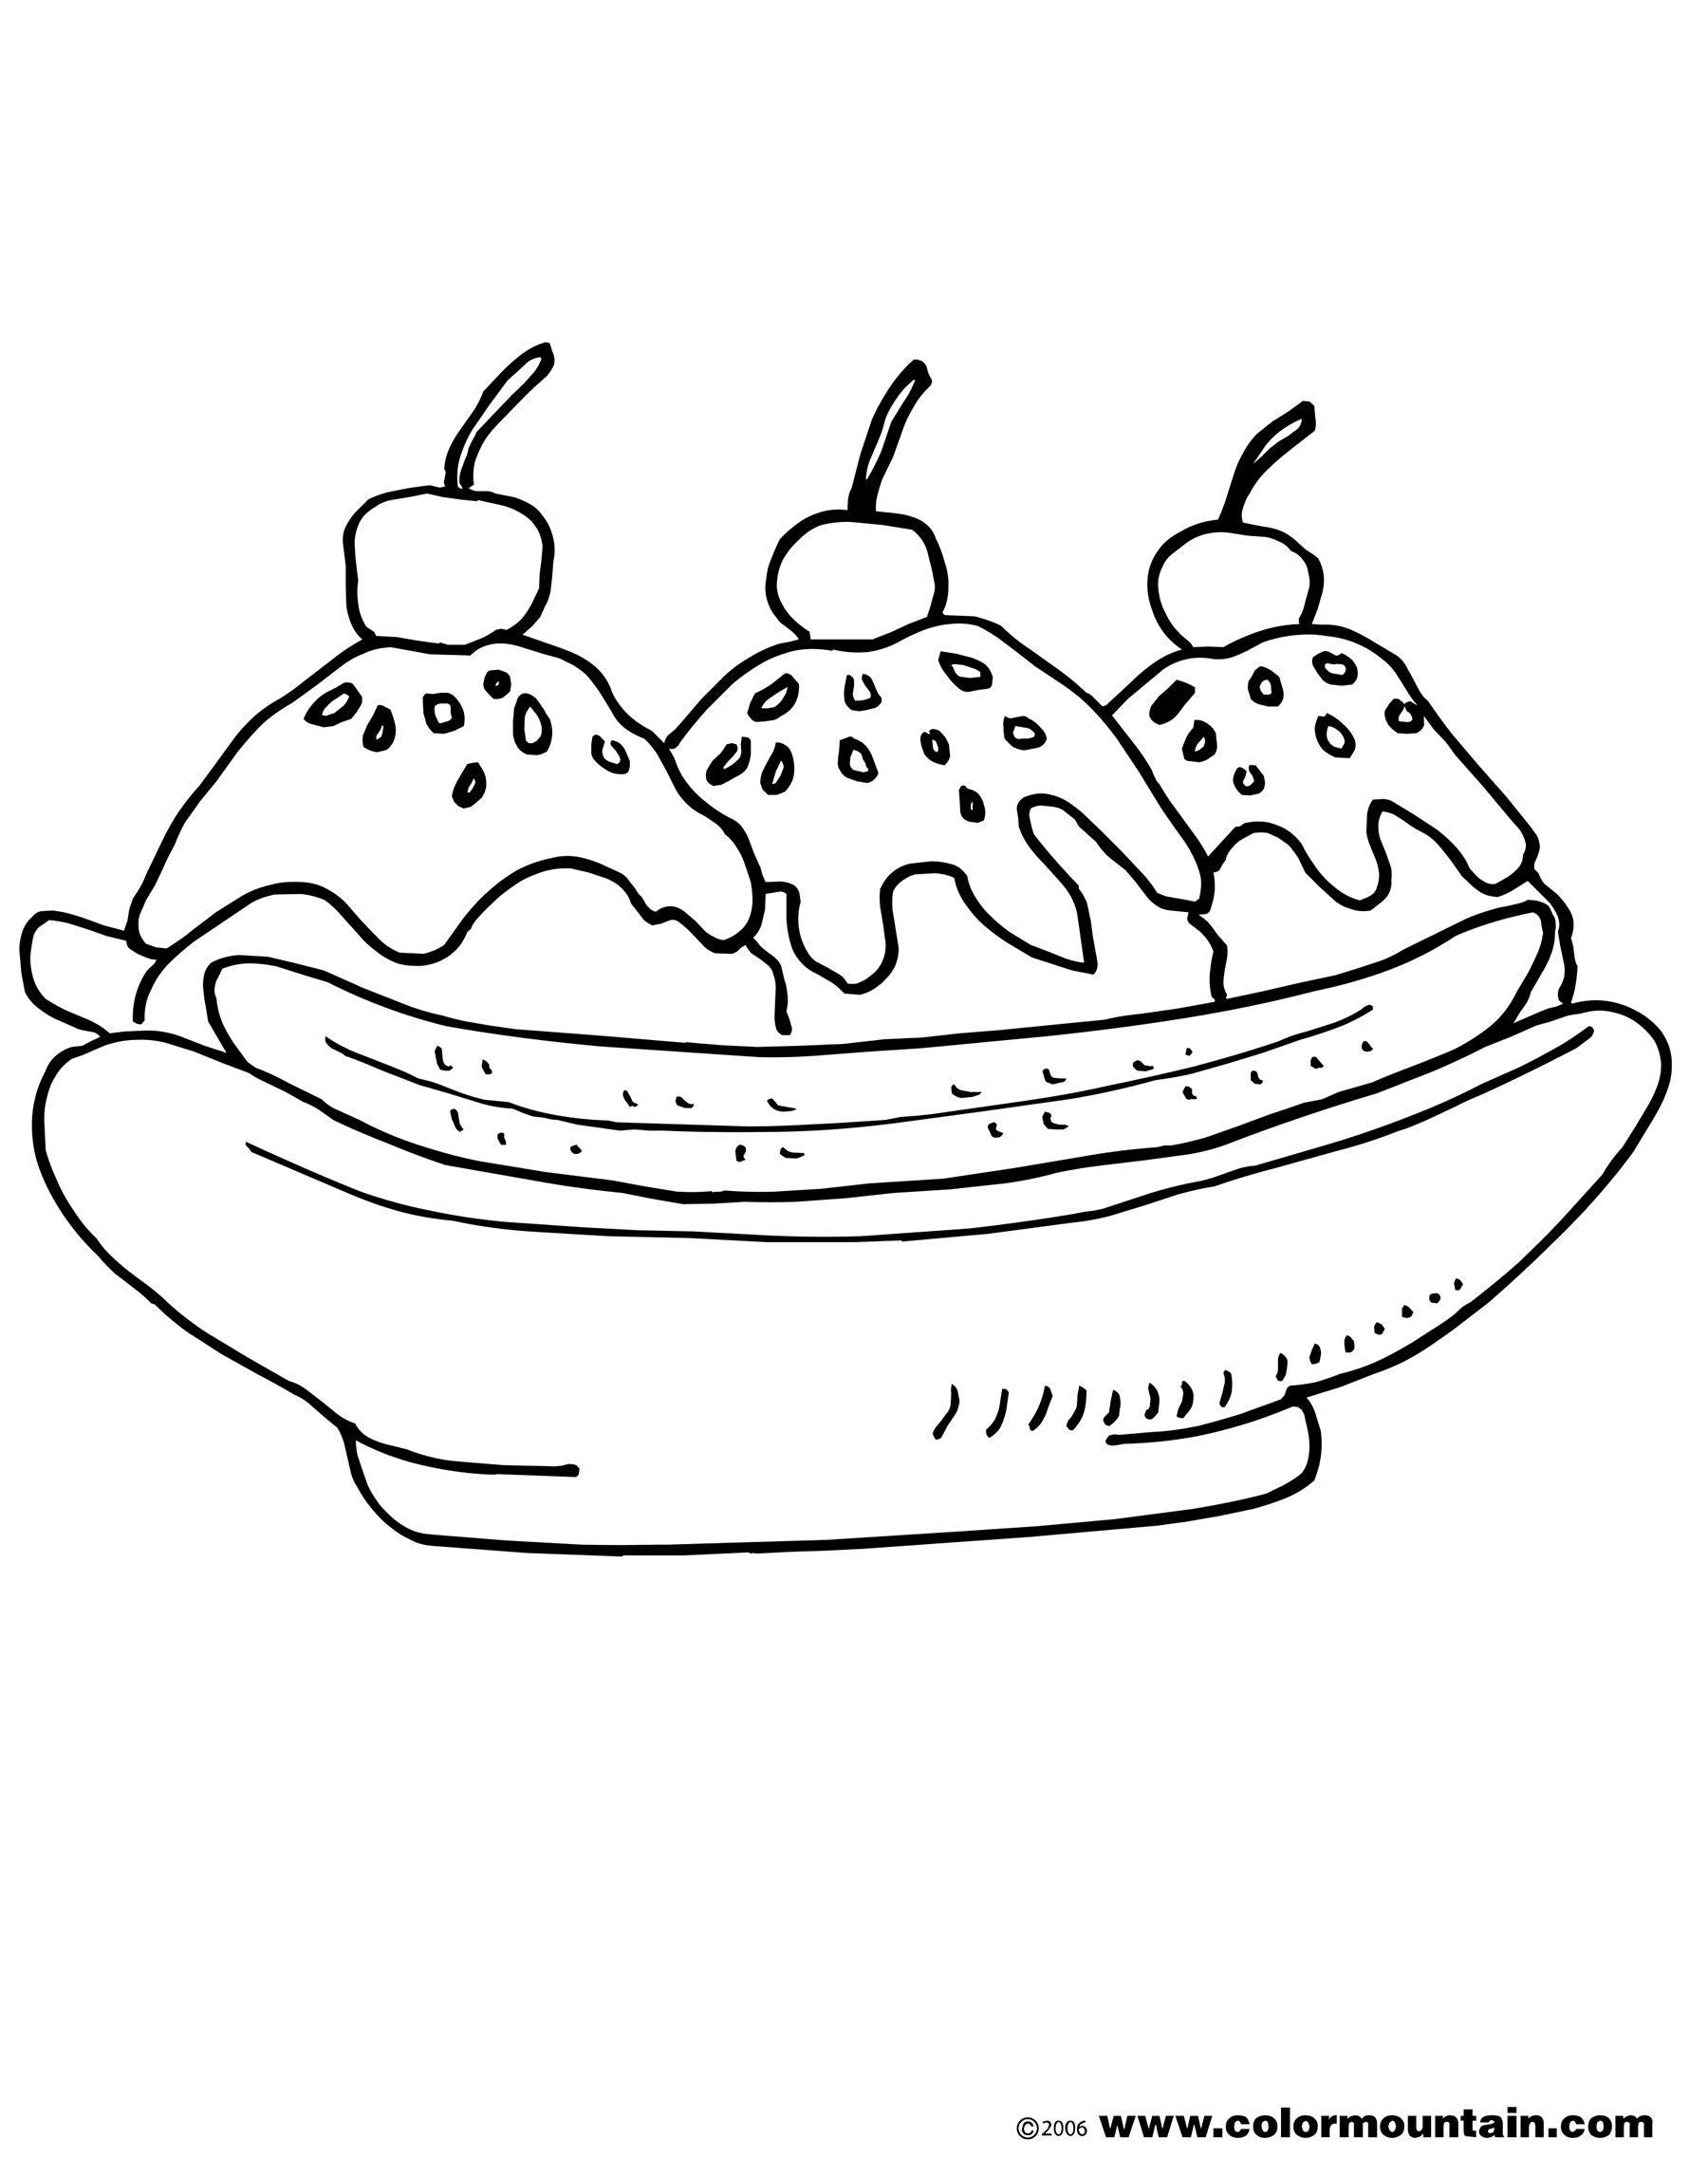 Banana Split Coloring Sheet Create A Printout Or Activity Fruit Coloring Pages Turtle Coloring Pages Monster Coloring Pages